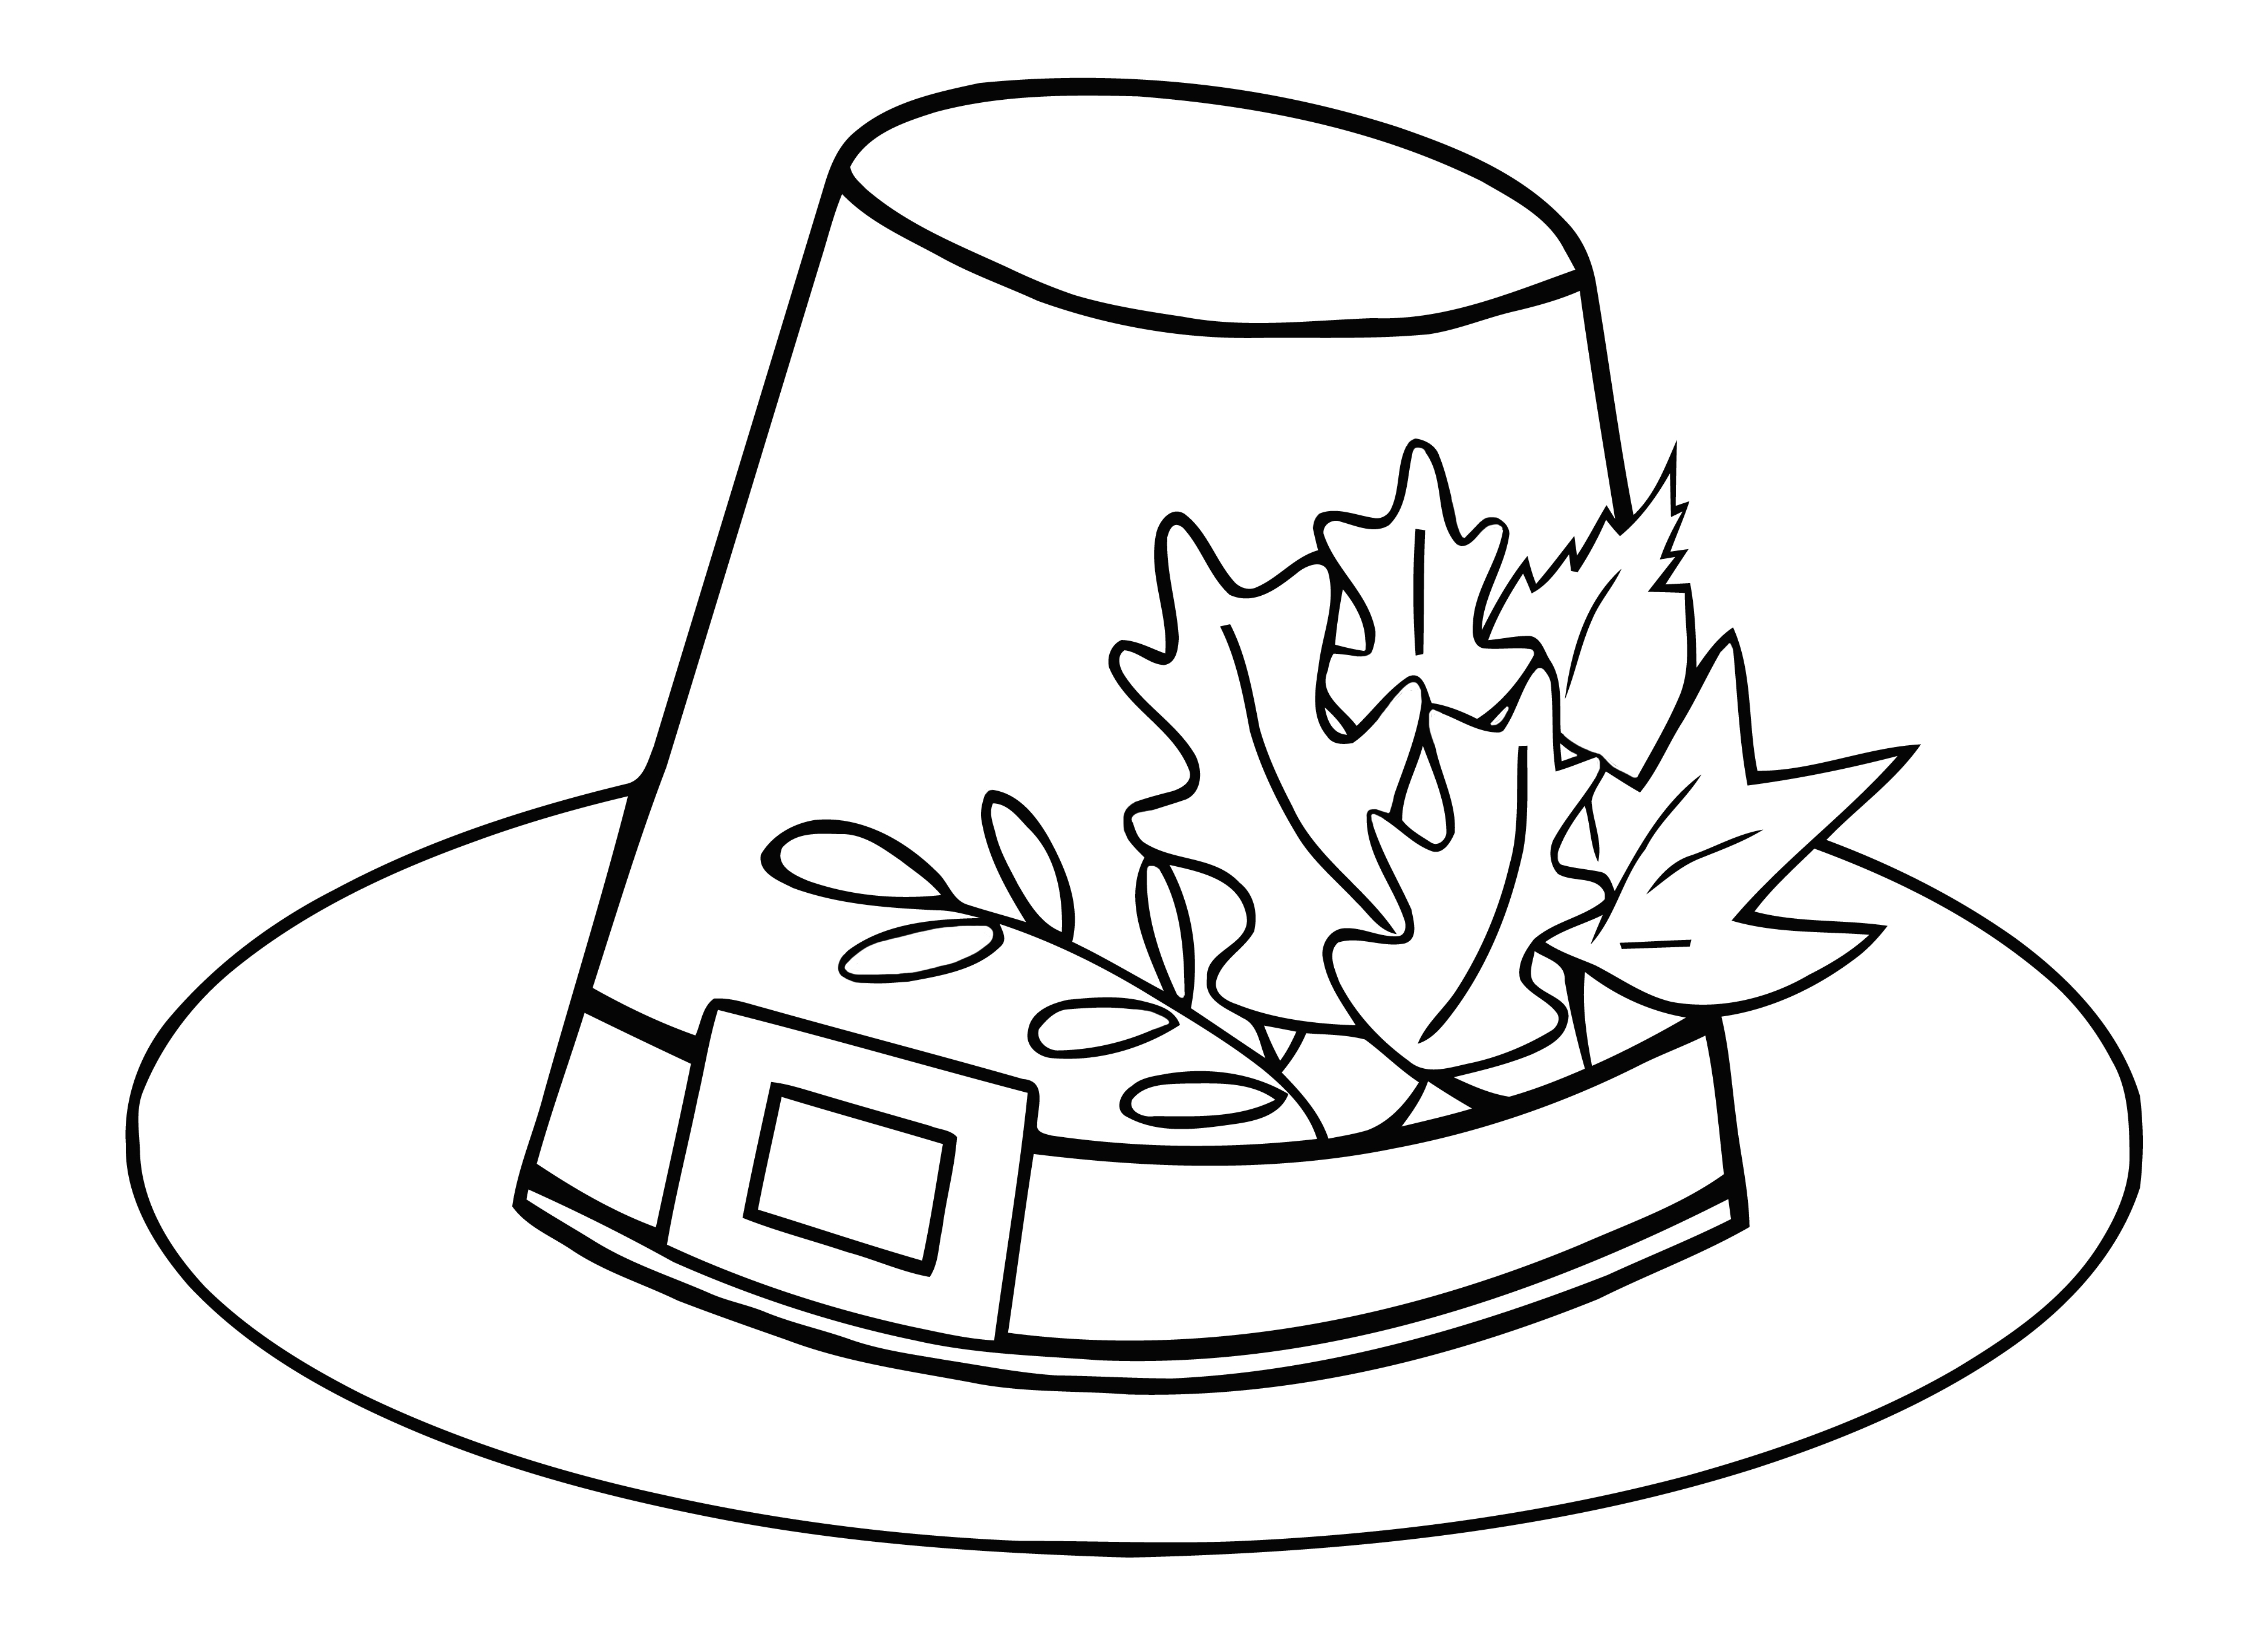 Free Printable Thanksgiving Coloring Pages For Preschoolers ...